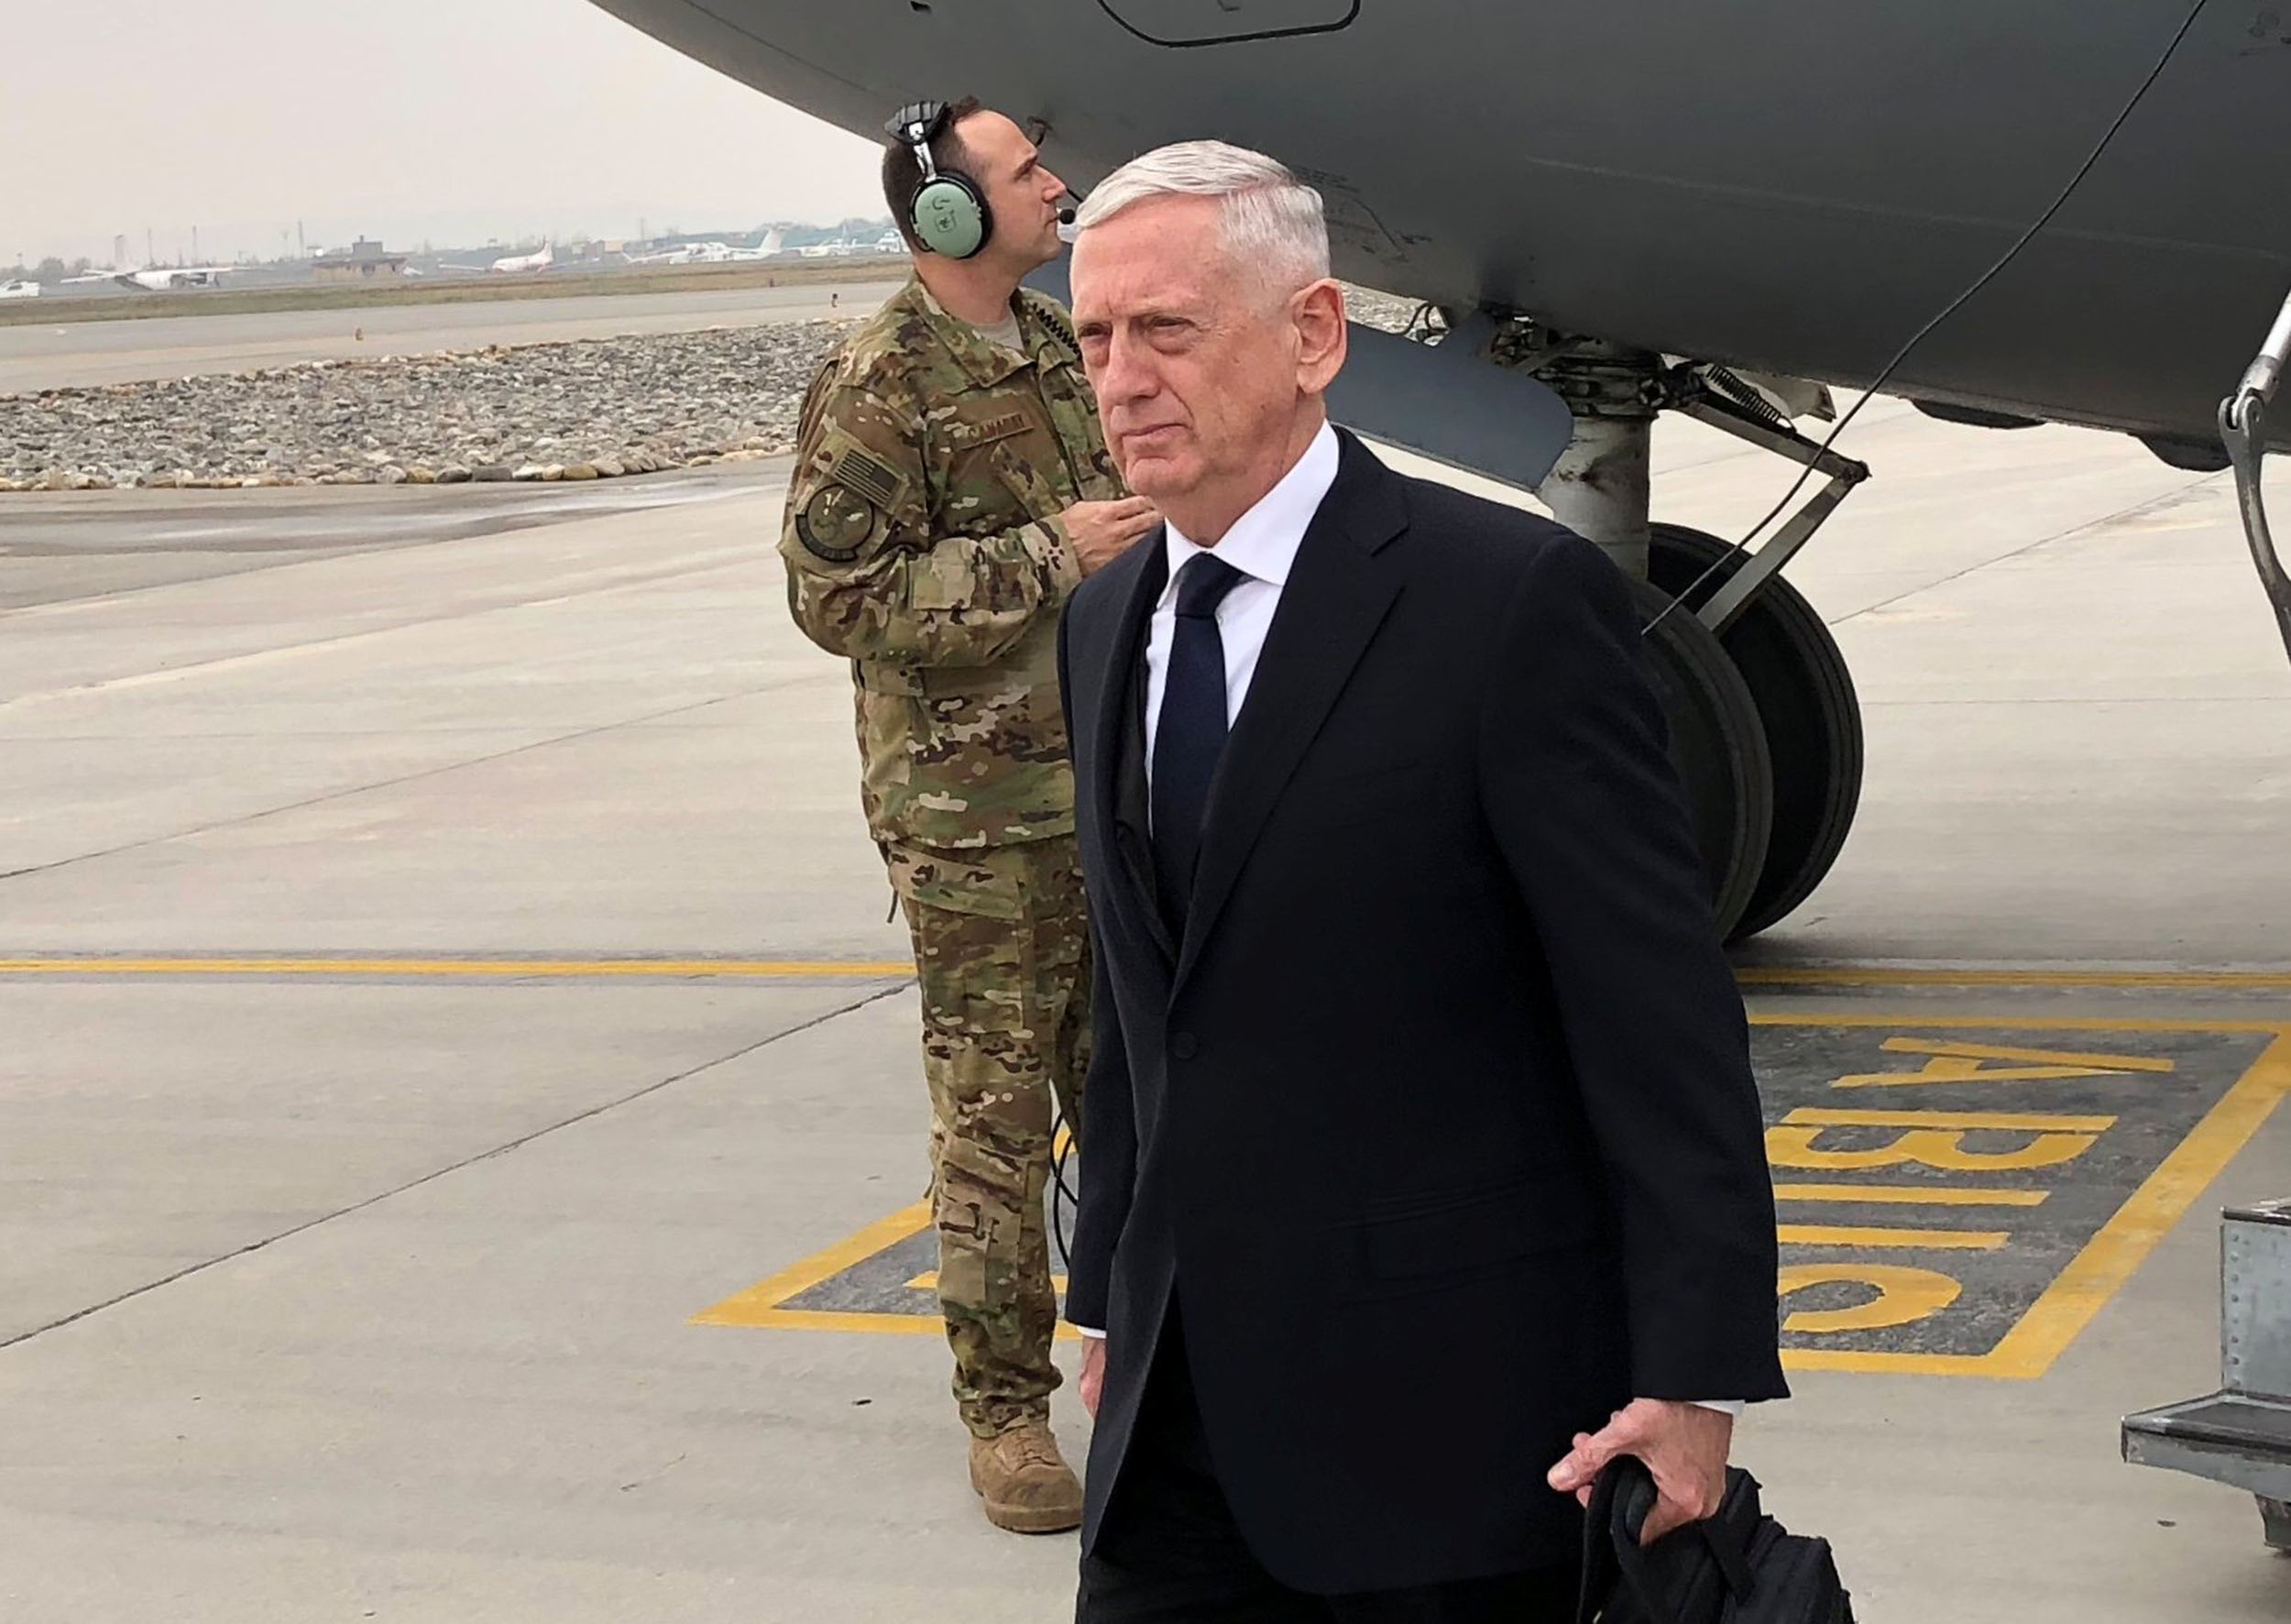 U.S.-picking-up-Taliban-interest-in-Afghan-peace-talks,-Mattis-says